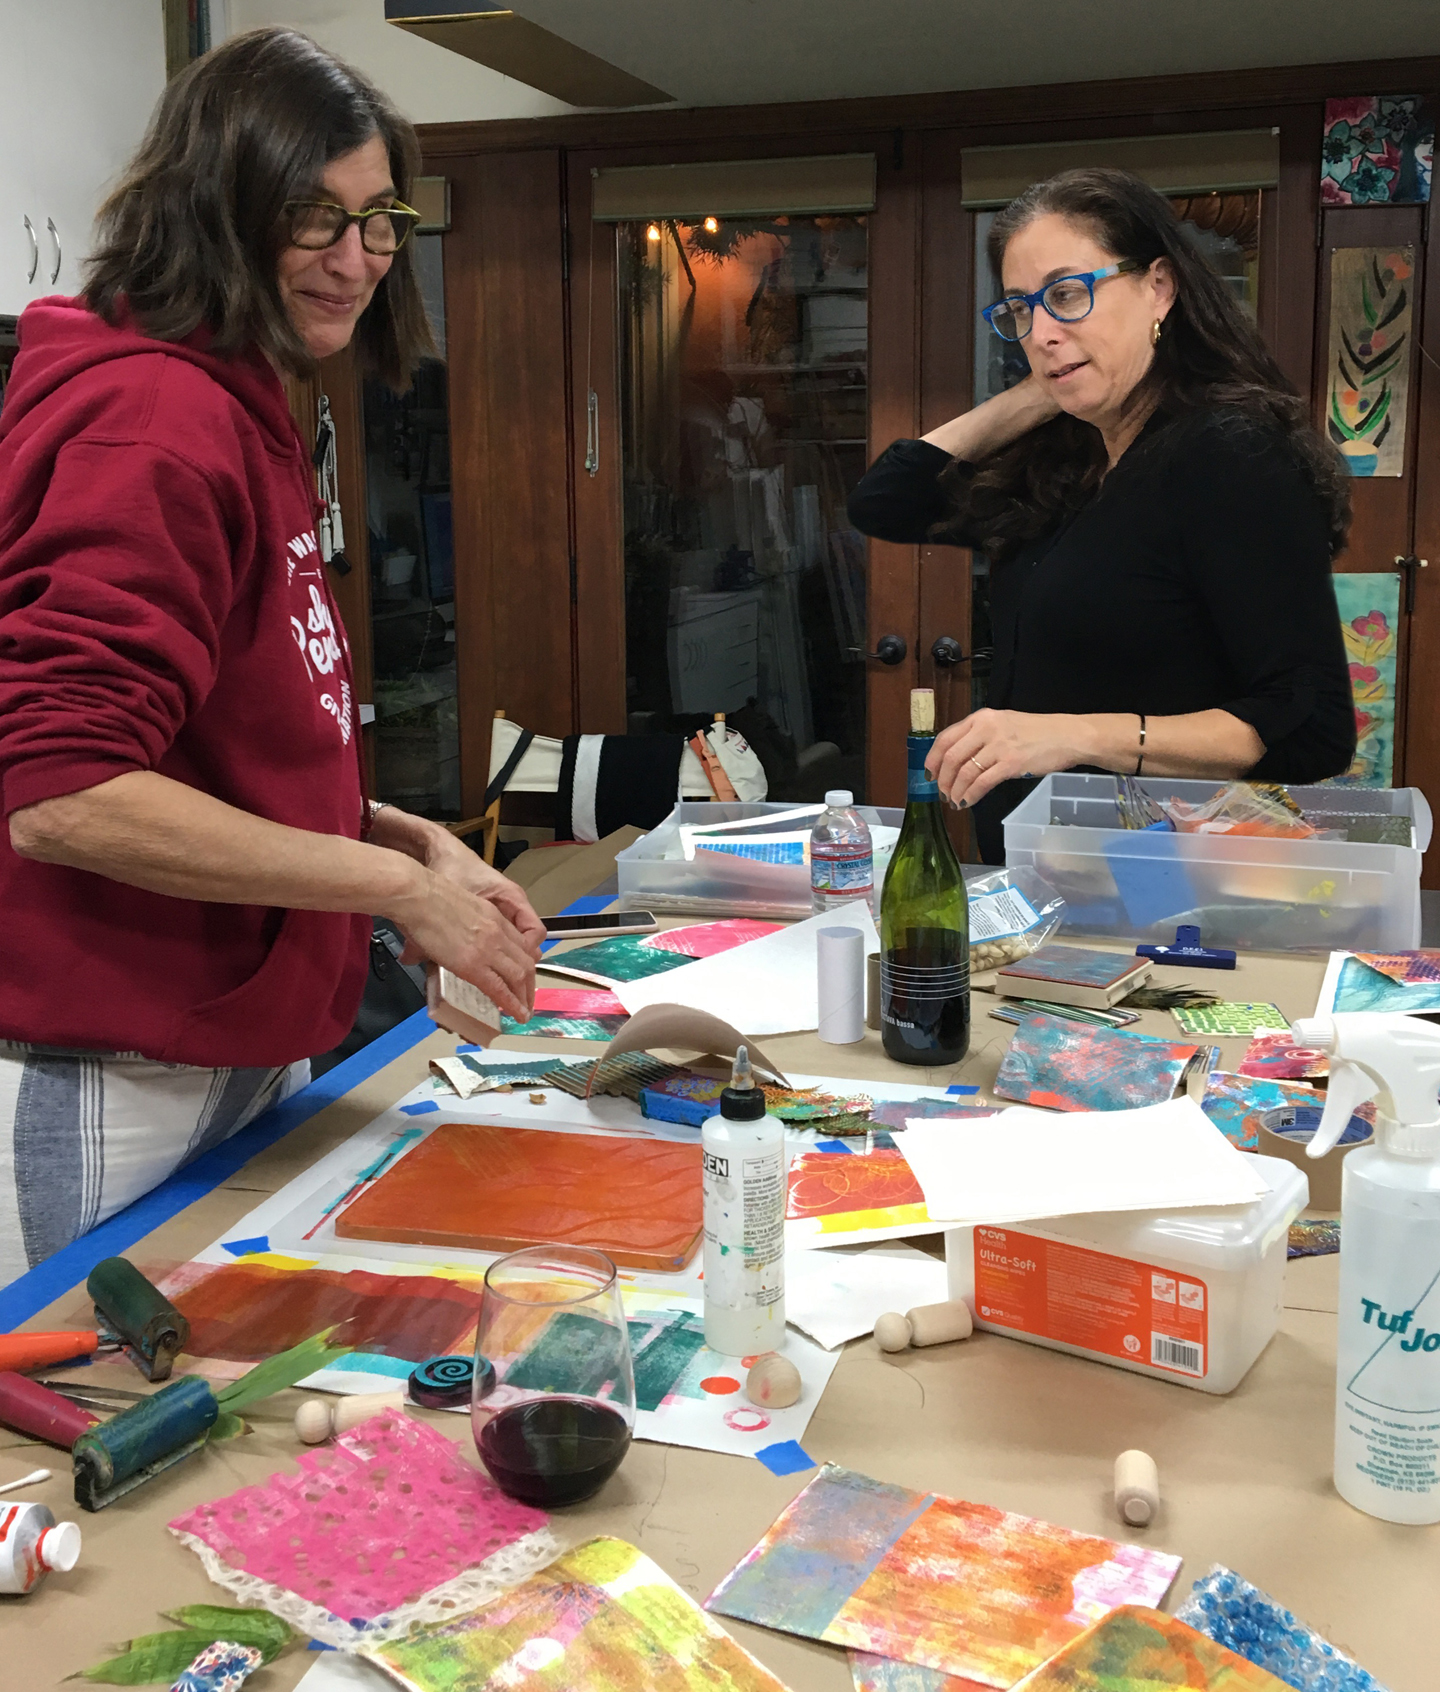 Adult art parties - Can accommodate up to 7 guest.Parties can be scheduled Thursday and Friday evenings or Sunday afternoons.Please email: jamieleehofferfineart@gmail.com